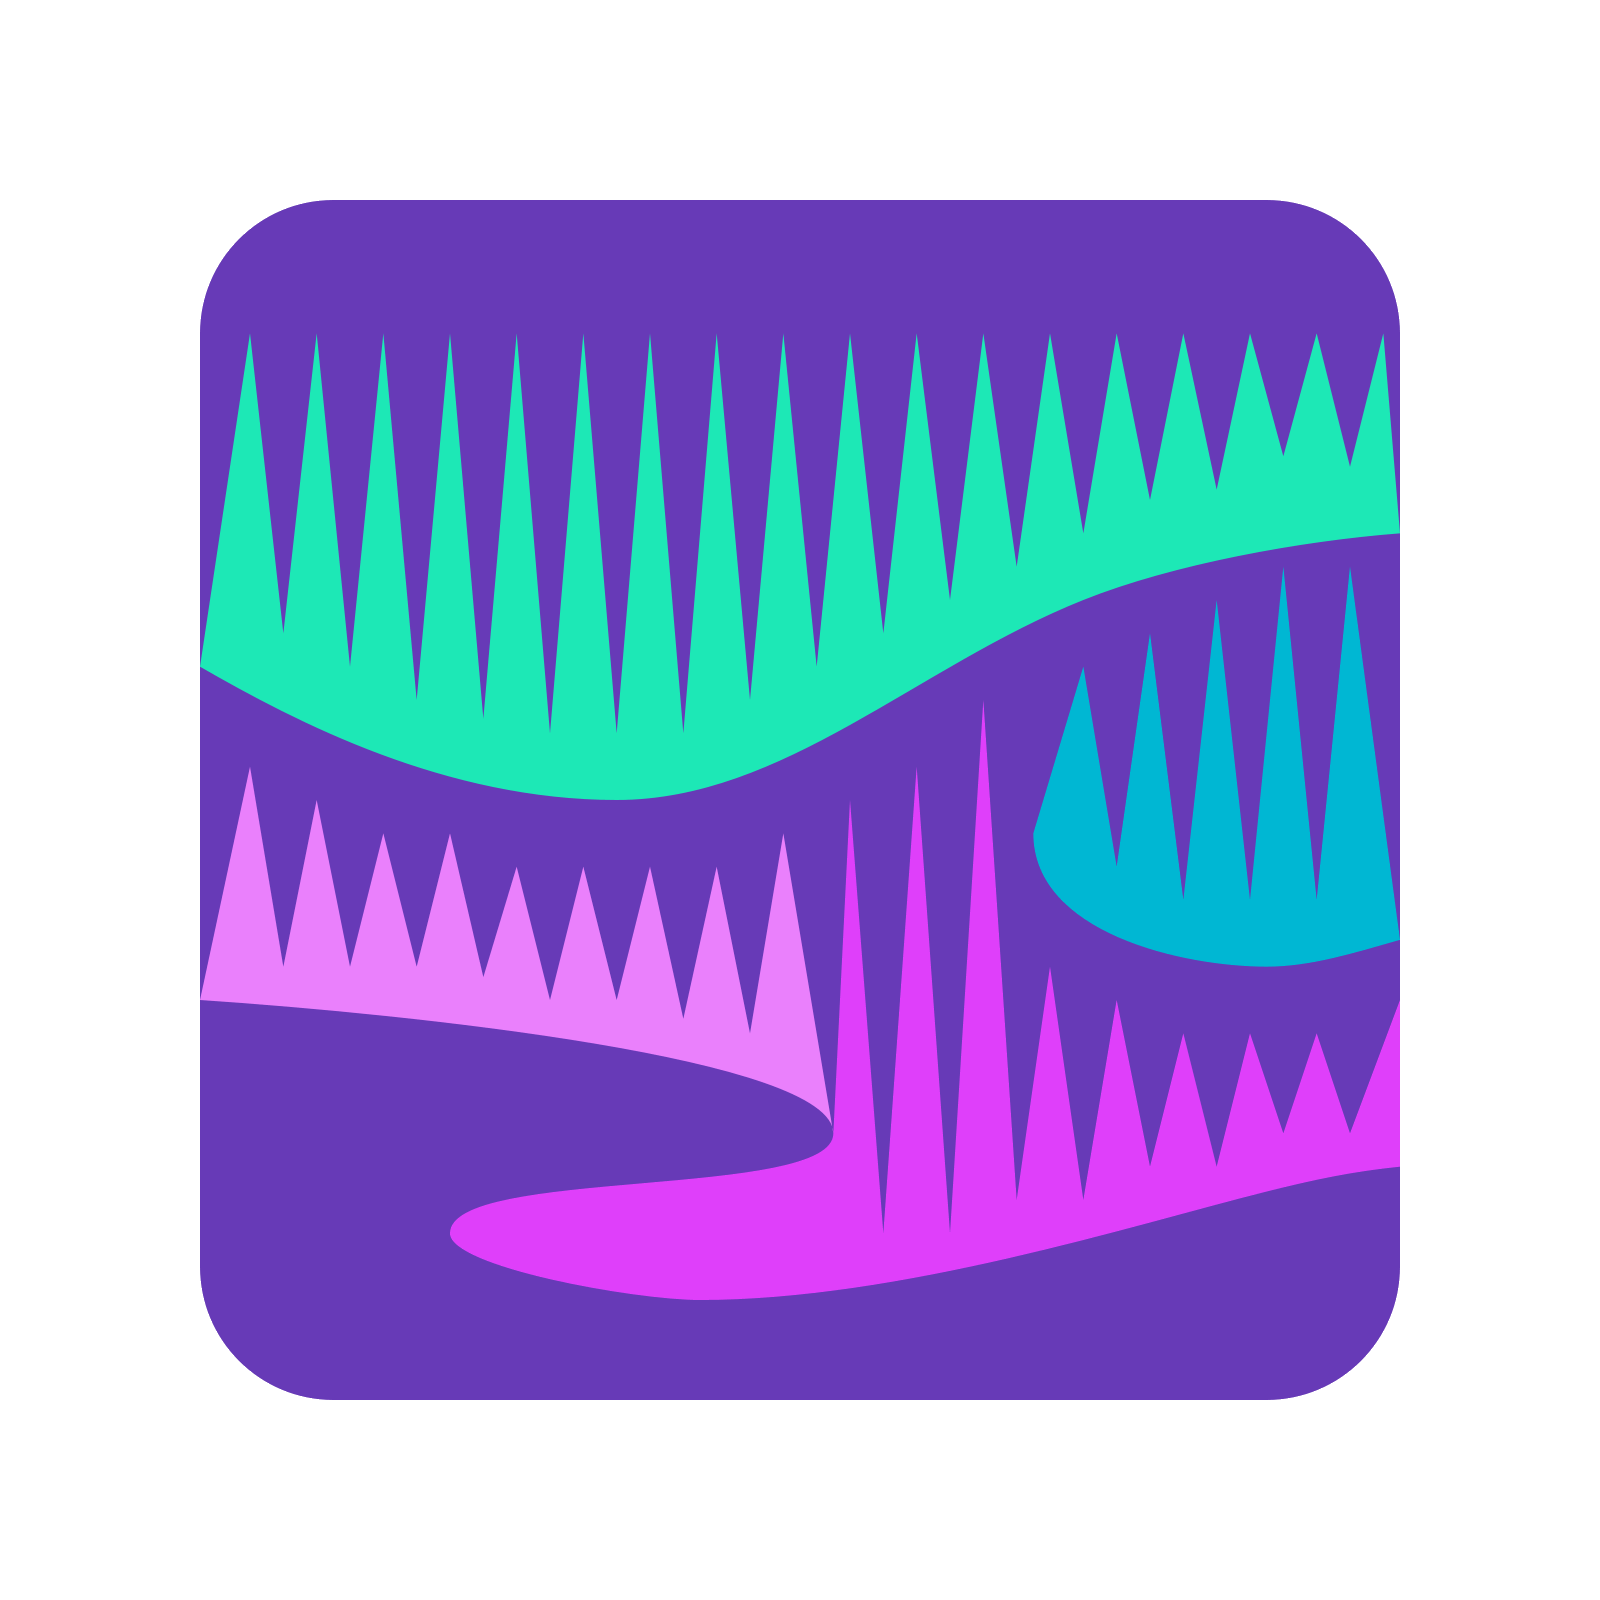 Northern lights png. Icon free download and